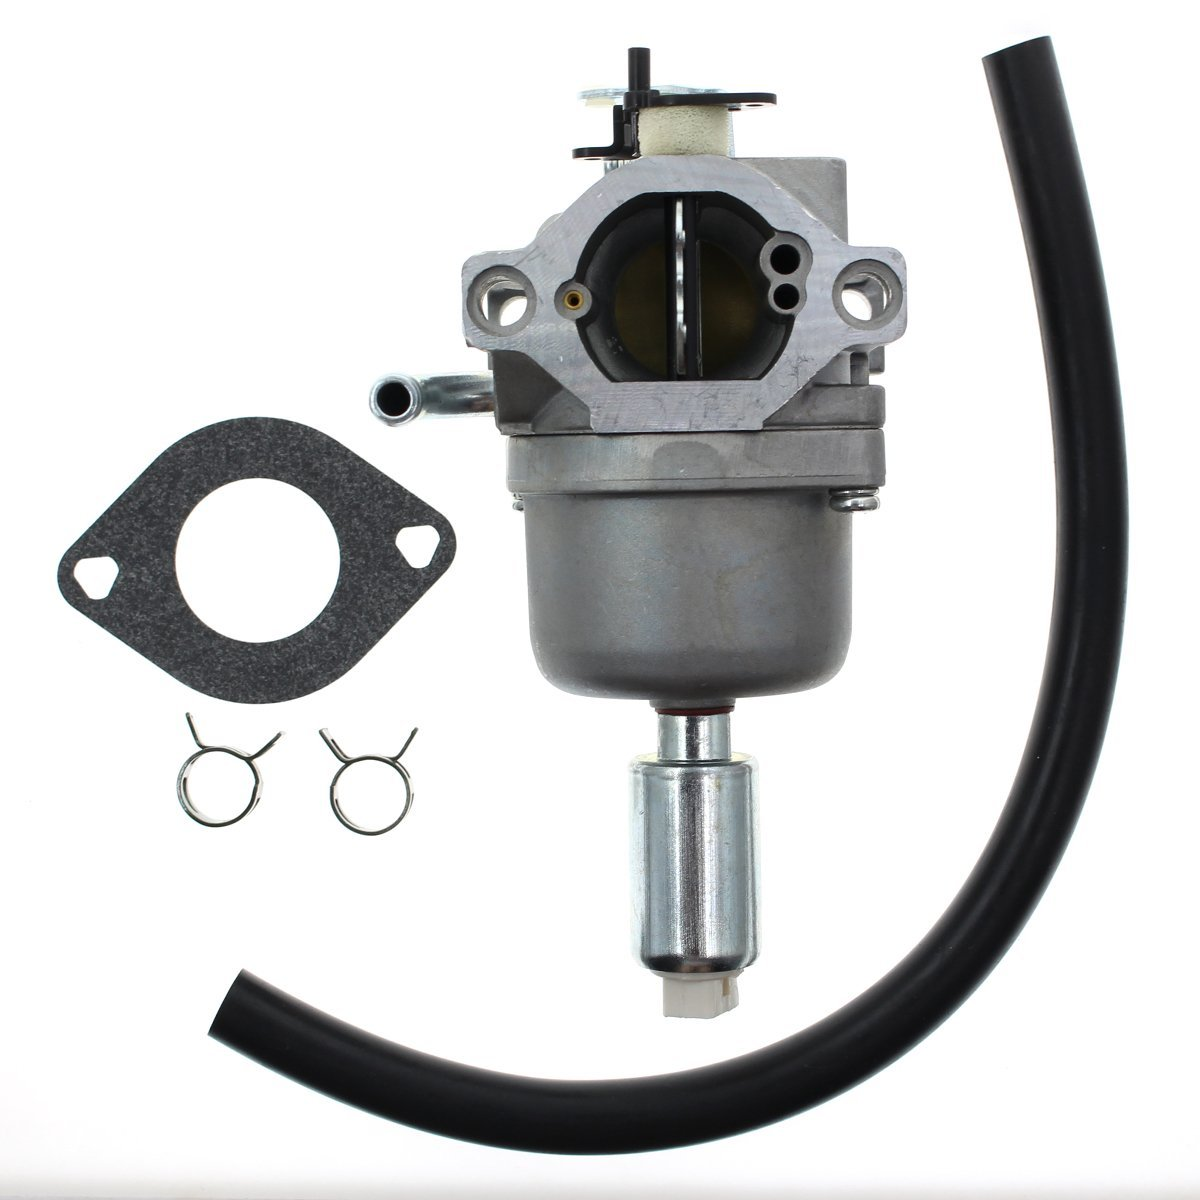 Carbhub 594601 Carburetor for Briggs & Stratton 796587 591736 594601 19.5 HP Engine Craftsman Riding Lawn Mower Tractor 19HP Intek Single Cylinder OHV Motor Nikki Carb